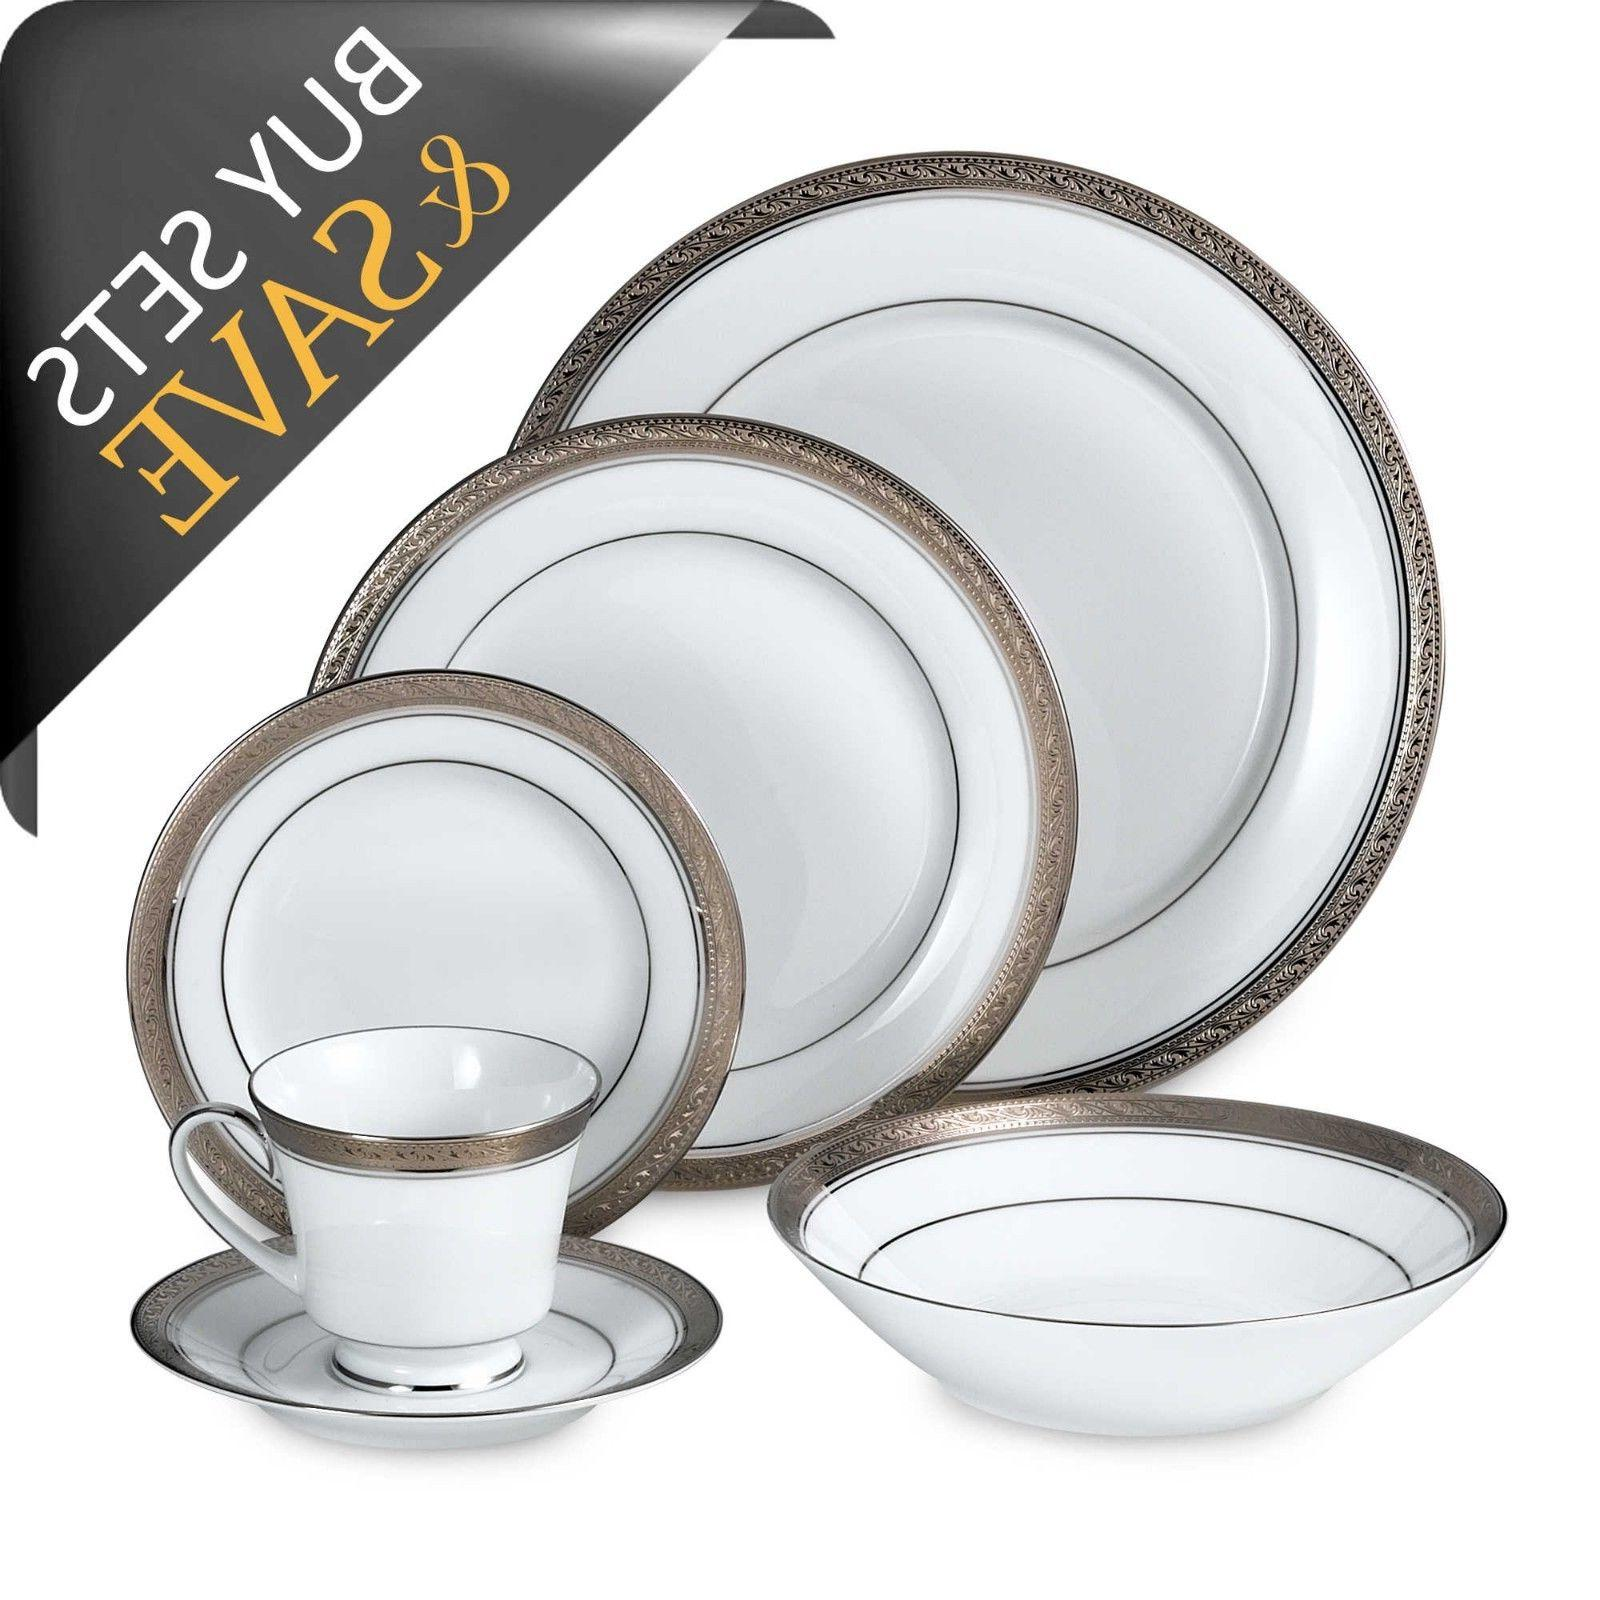 Noritake Platinum 50-piece Dinnerware Service 8 with Serve Set